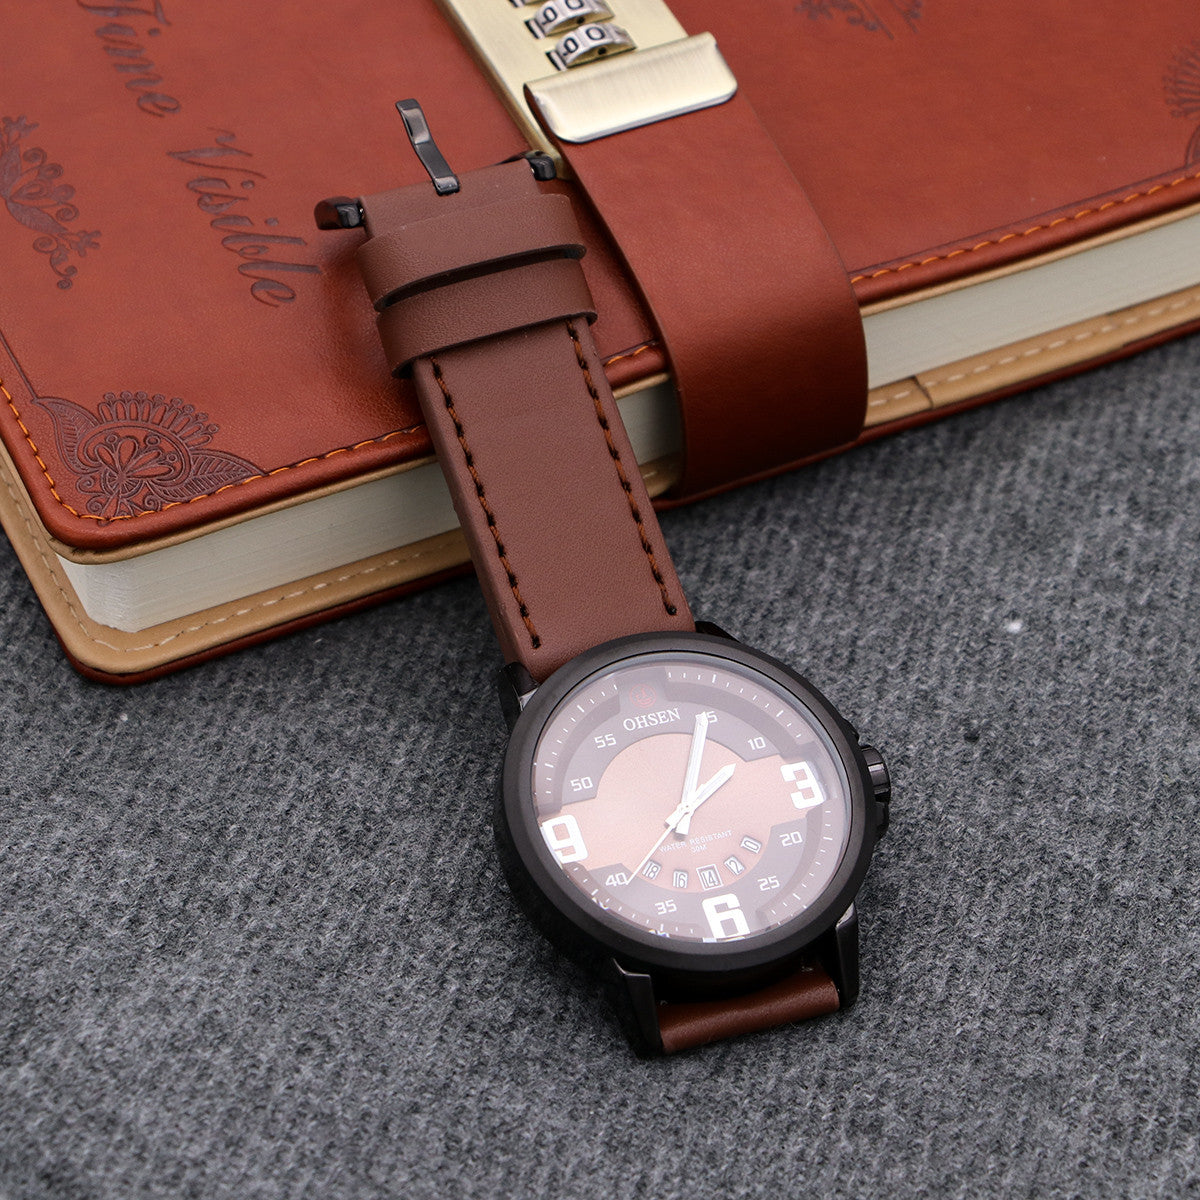 Multifunctional Electronic Watch